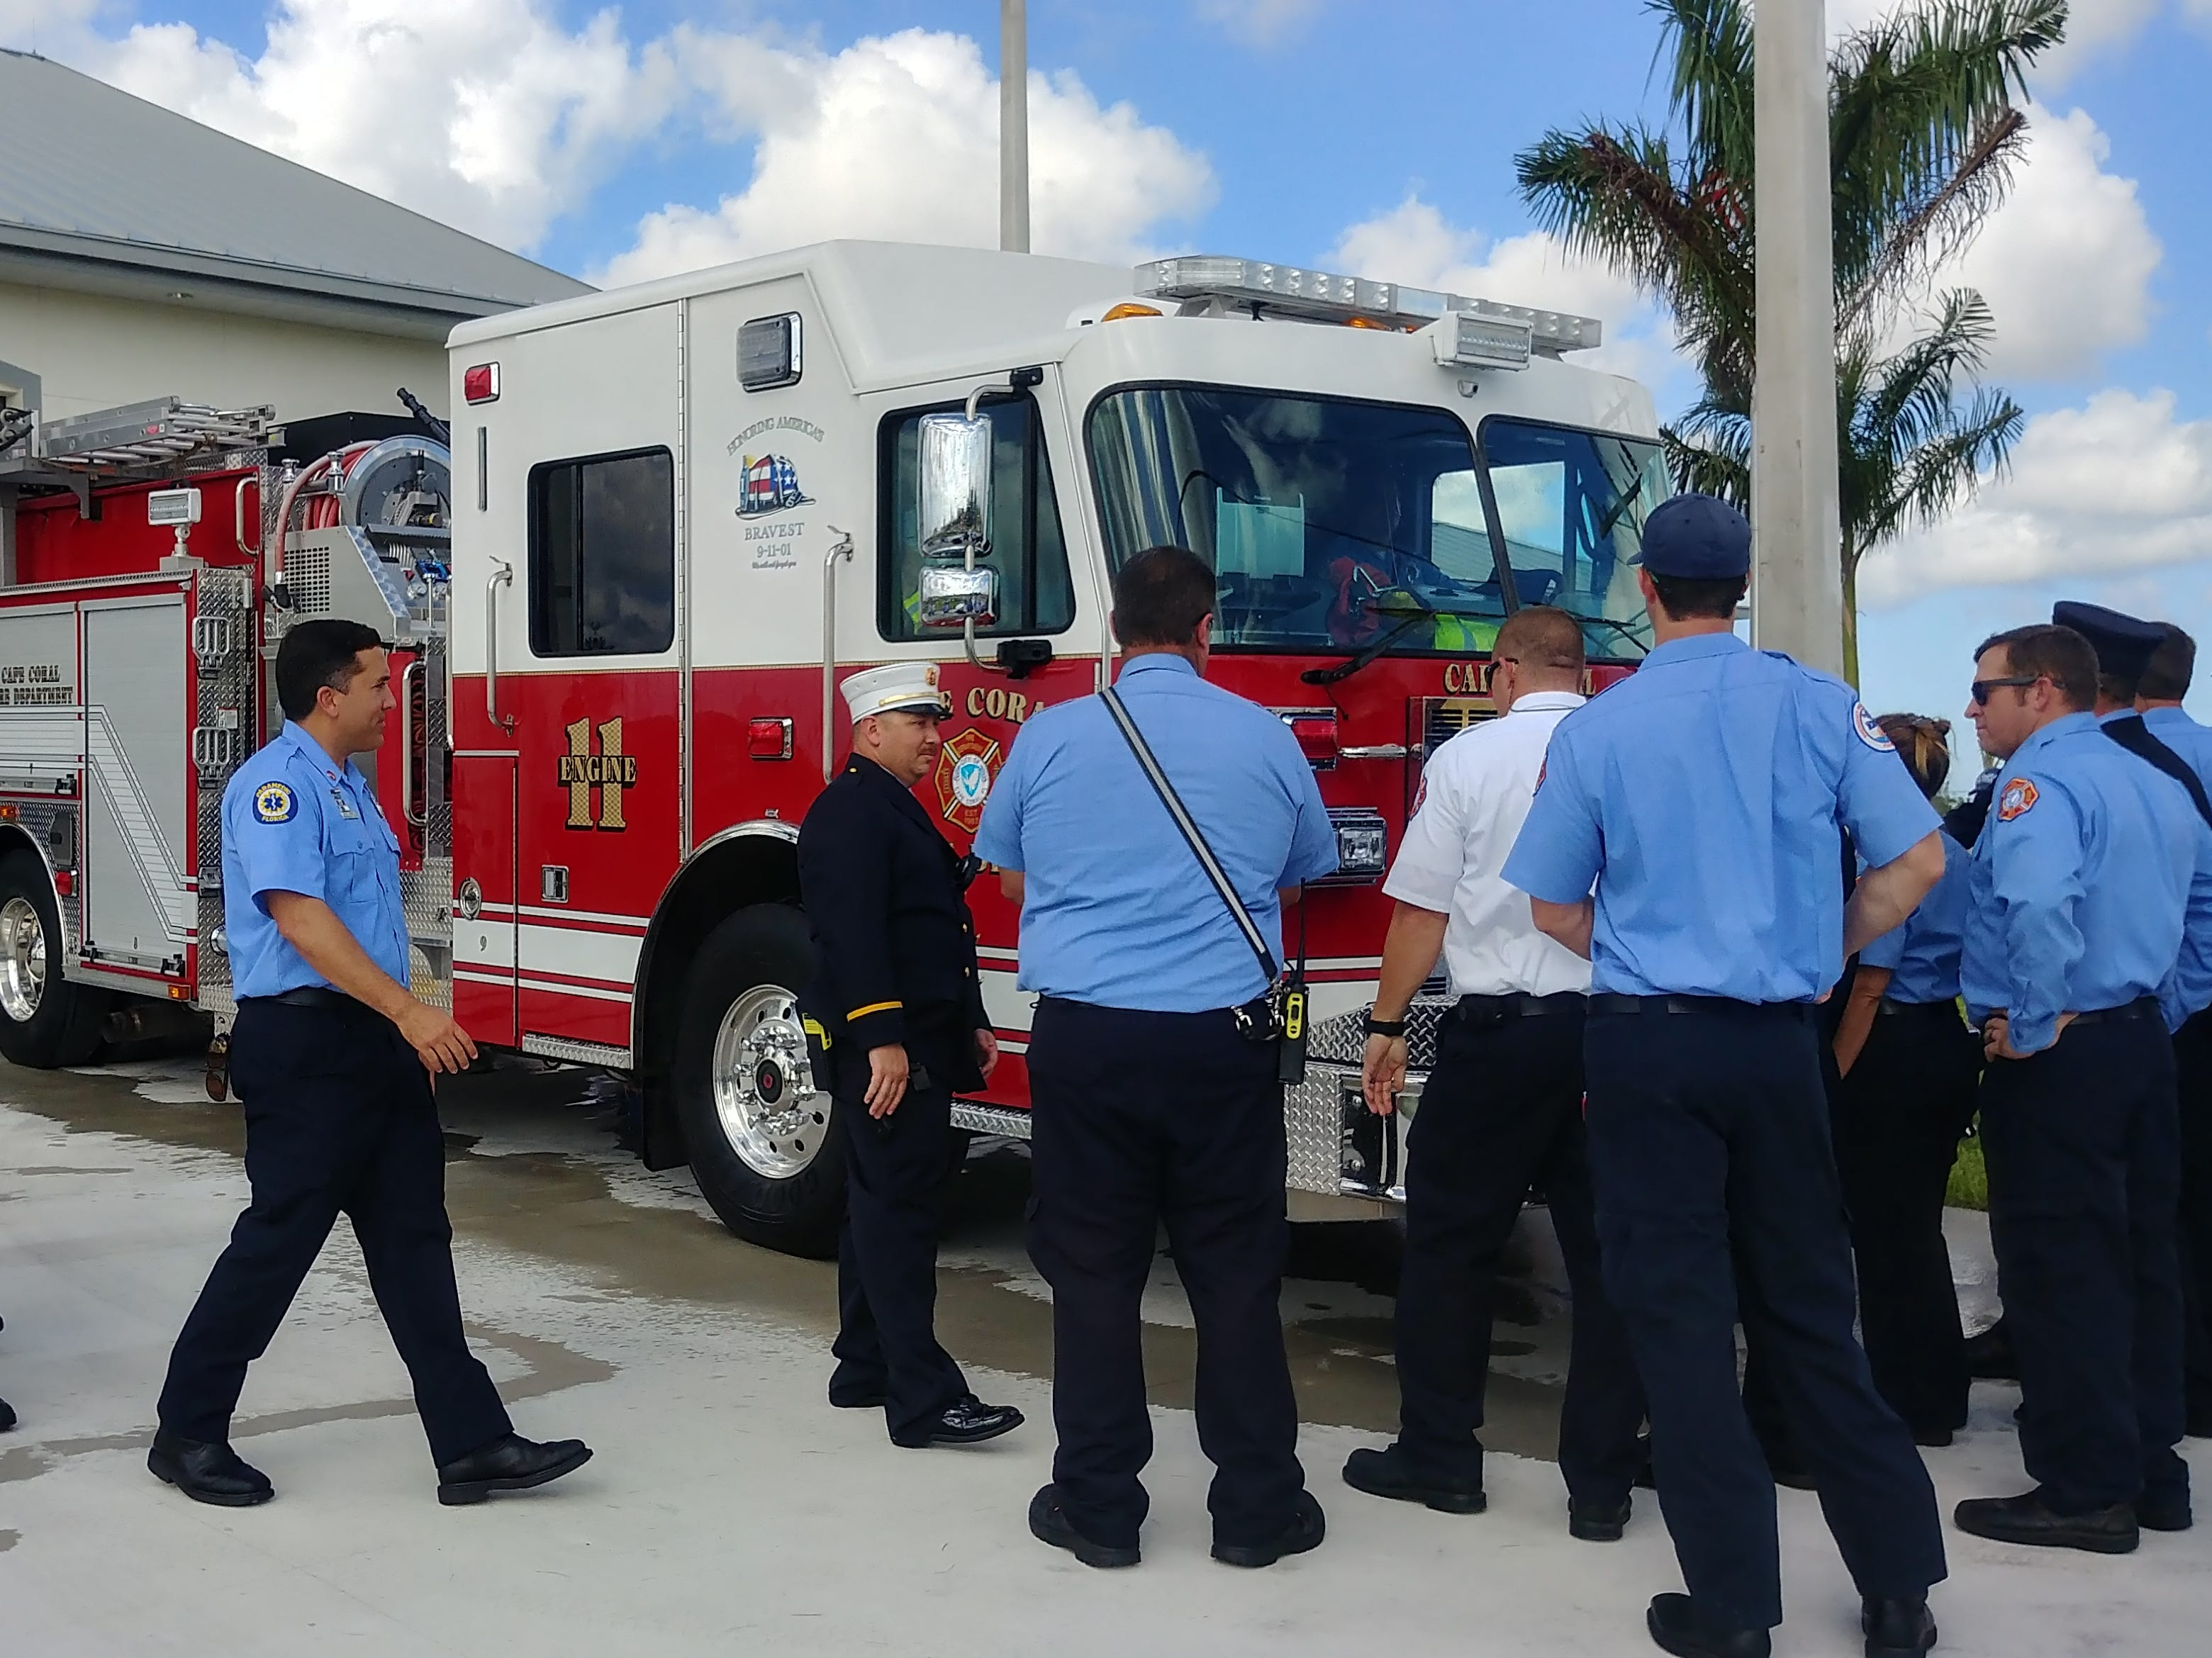 """Cape Coral firefighters gather to push Engine 11 into the bay at Station 11 during """"homing"""" ceremony for the truck. The station opened Wednesday under budget and earlier than planned."""